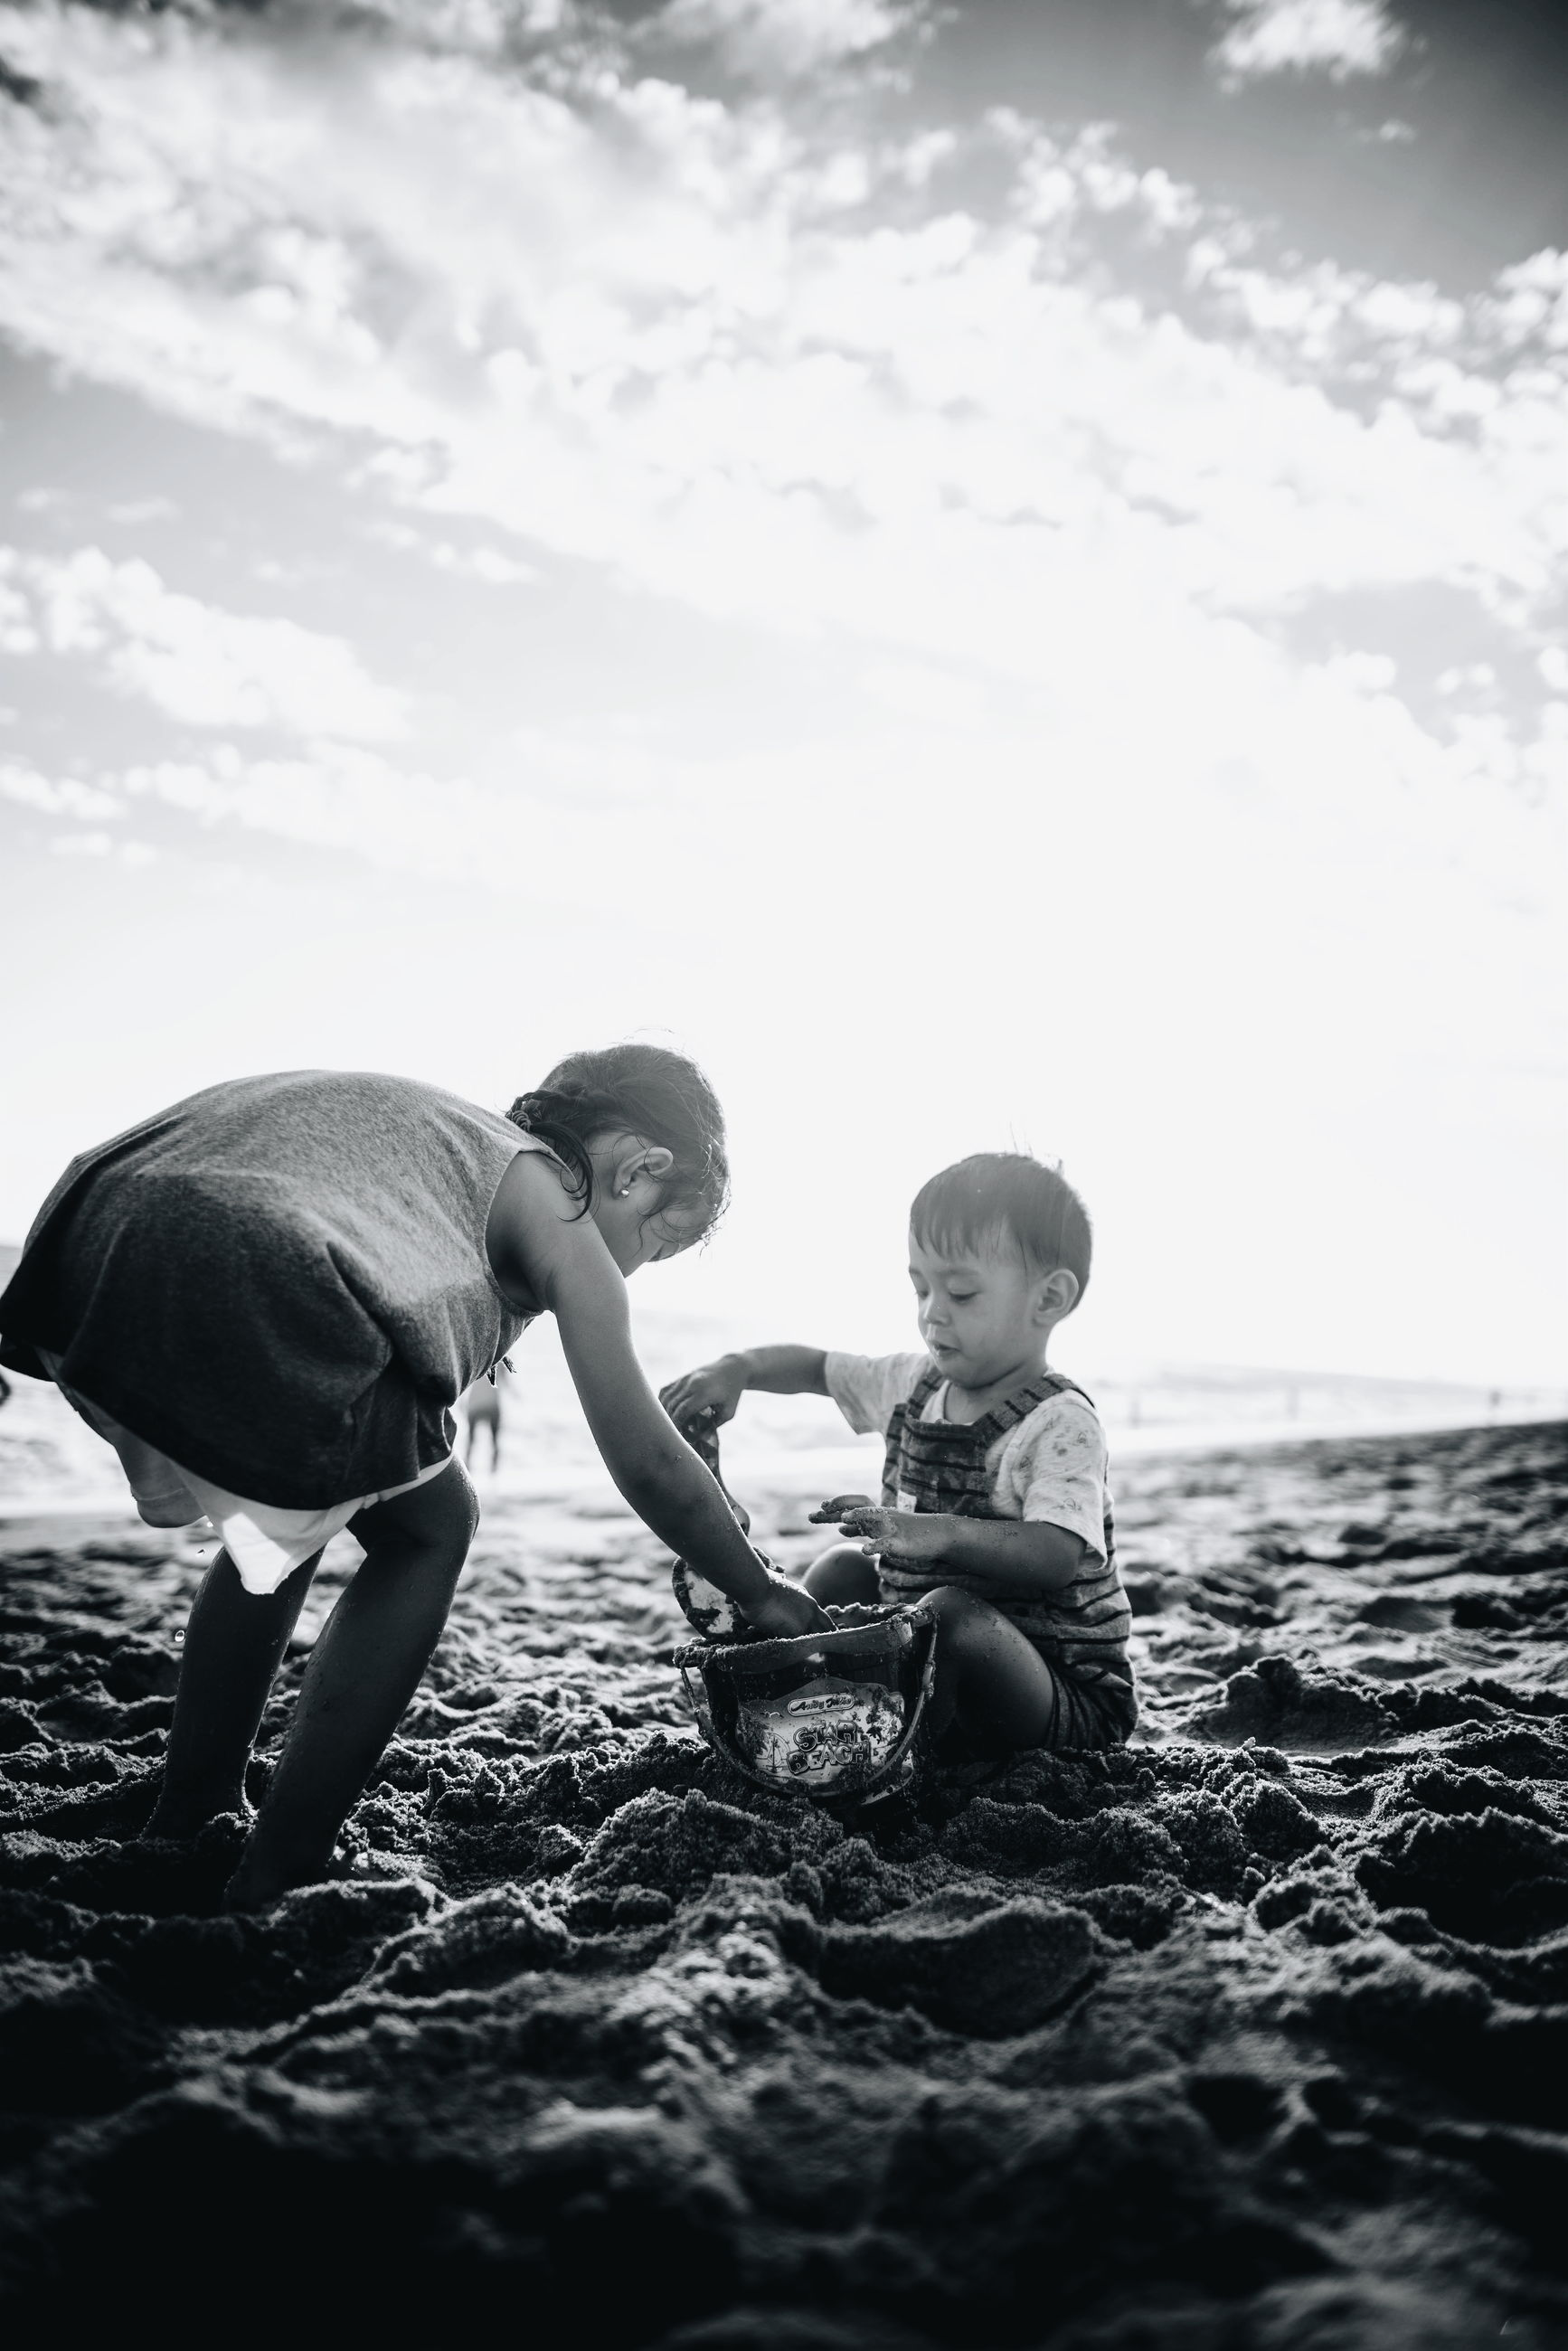 childhood, boys, family, sky, two people, full length, day, casual clothing, outdoors, togetherness, sibling, happiness, father, bonding, girls, real people, nature, smiling, people